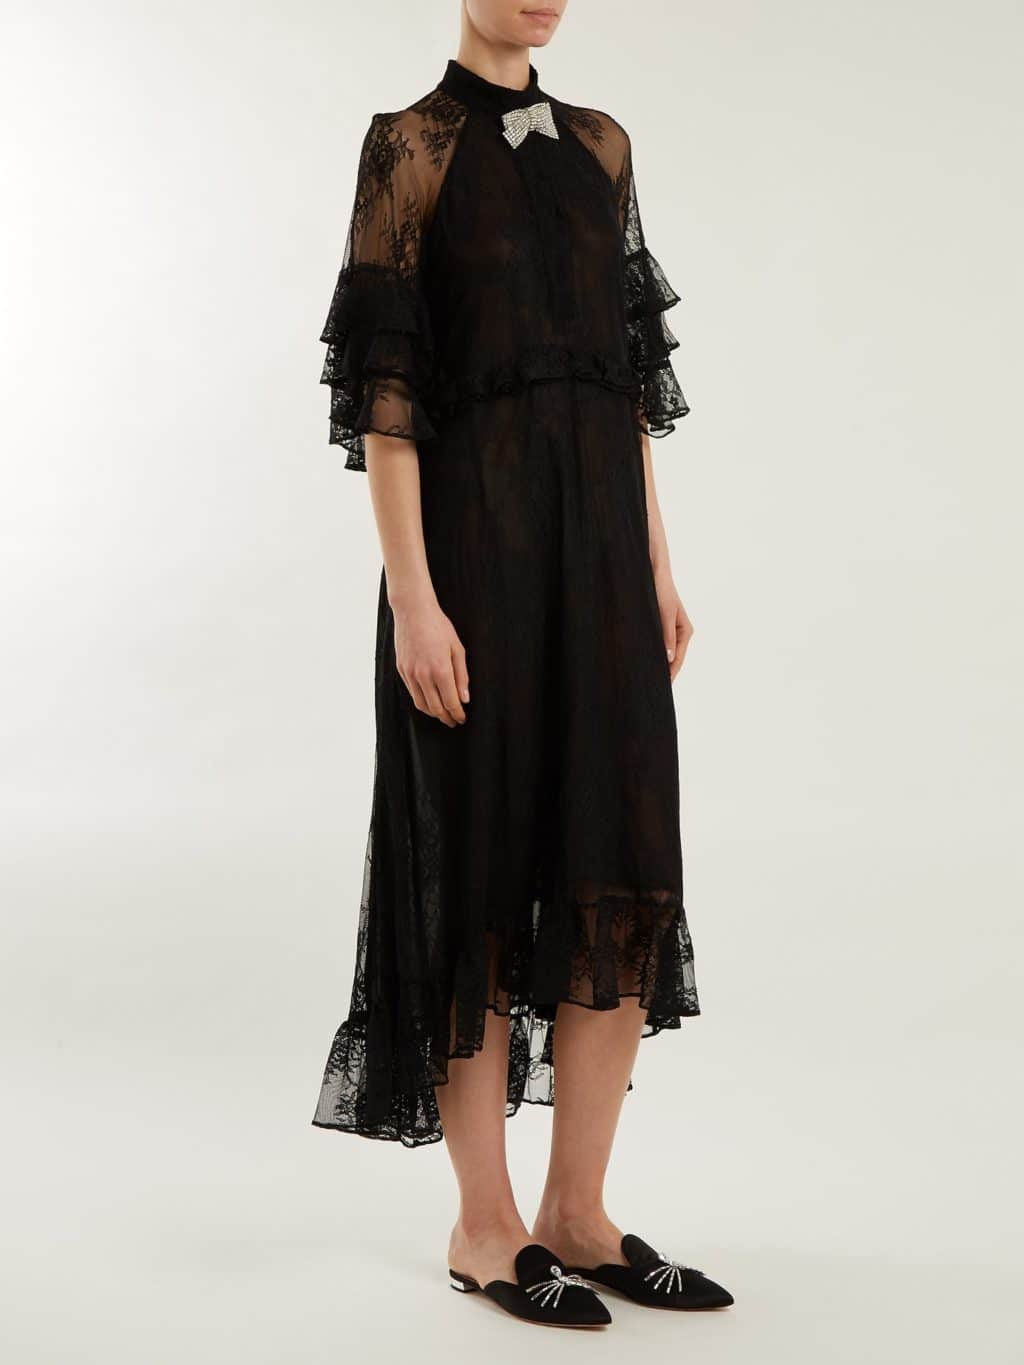 Dodo Bar Or Black Dress.Dodo Bar Or Rossano Ruffle Trimmed Lace Black Dress We Select Dresses